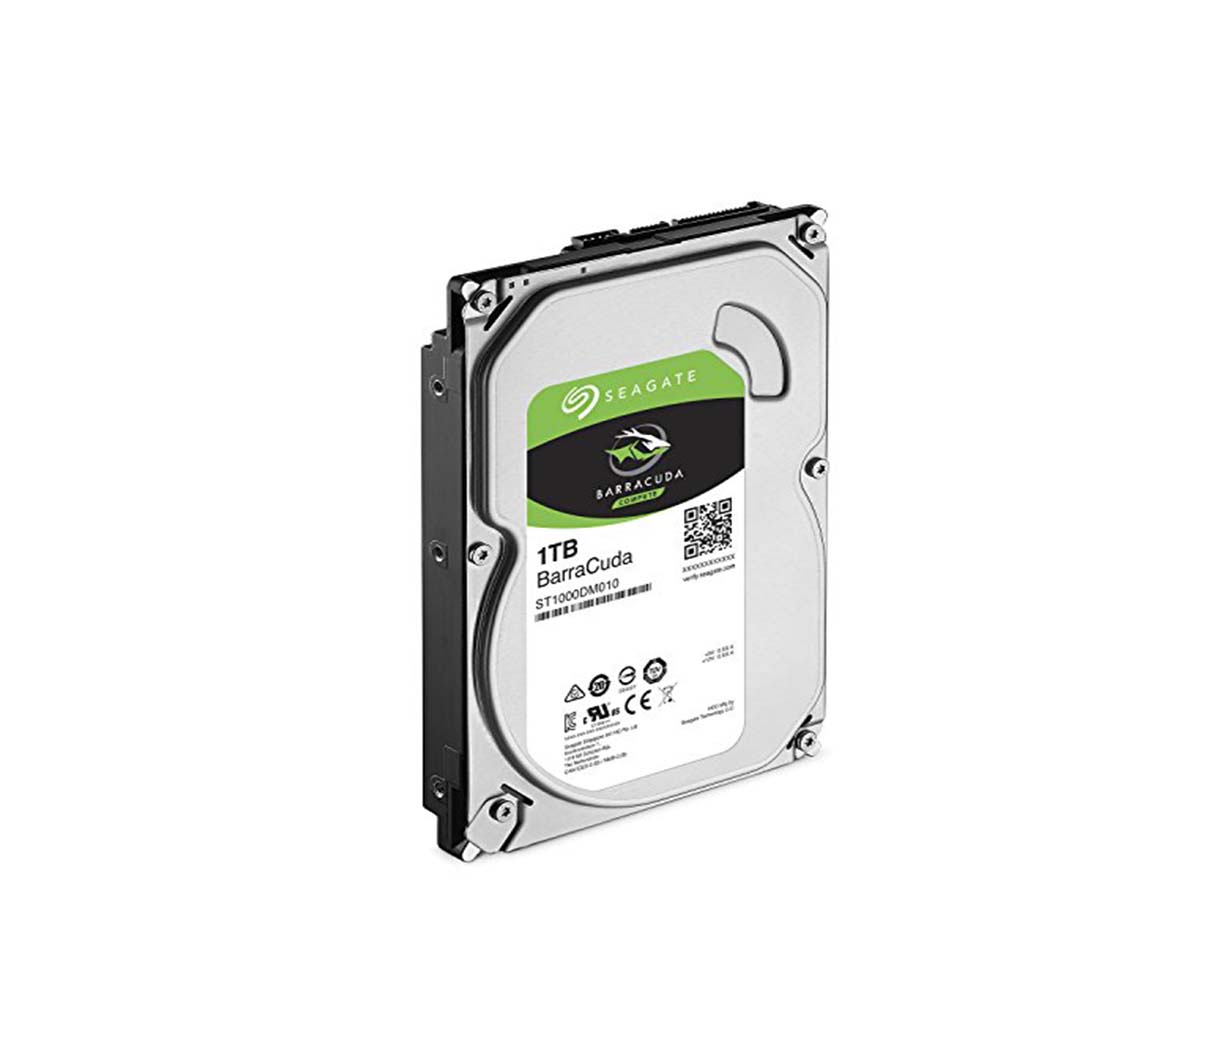 HDD SEAGATE 500GB BARRACUDA 3.5″ SATA 3 7200RPM